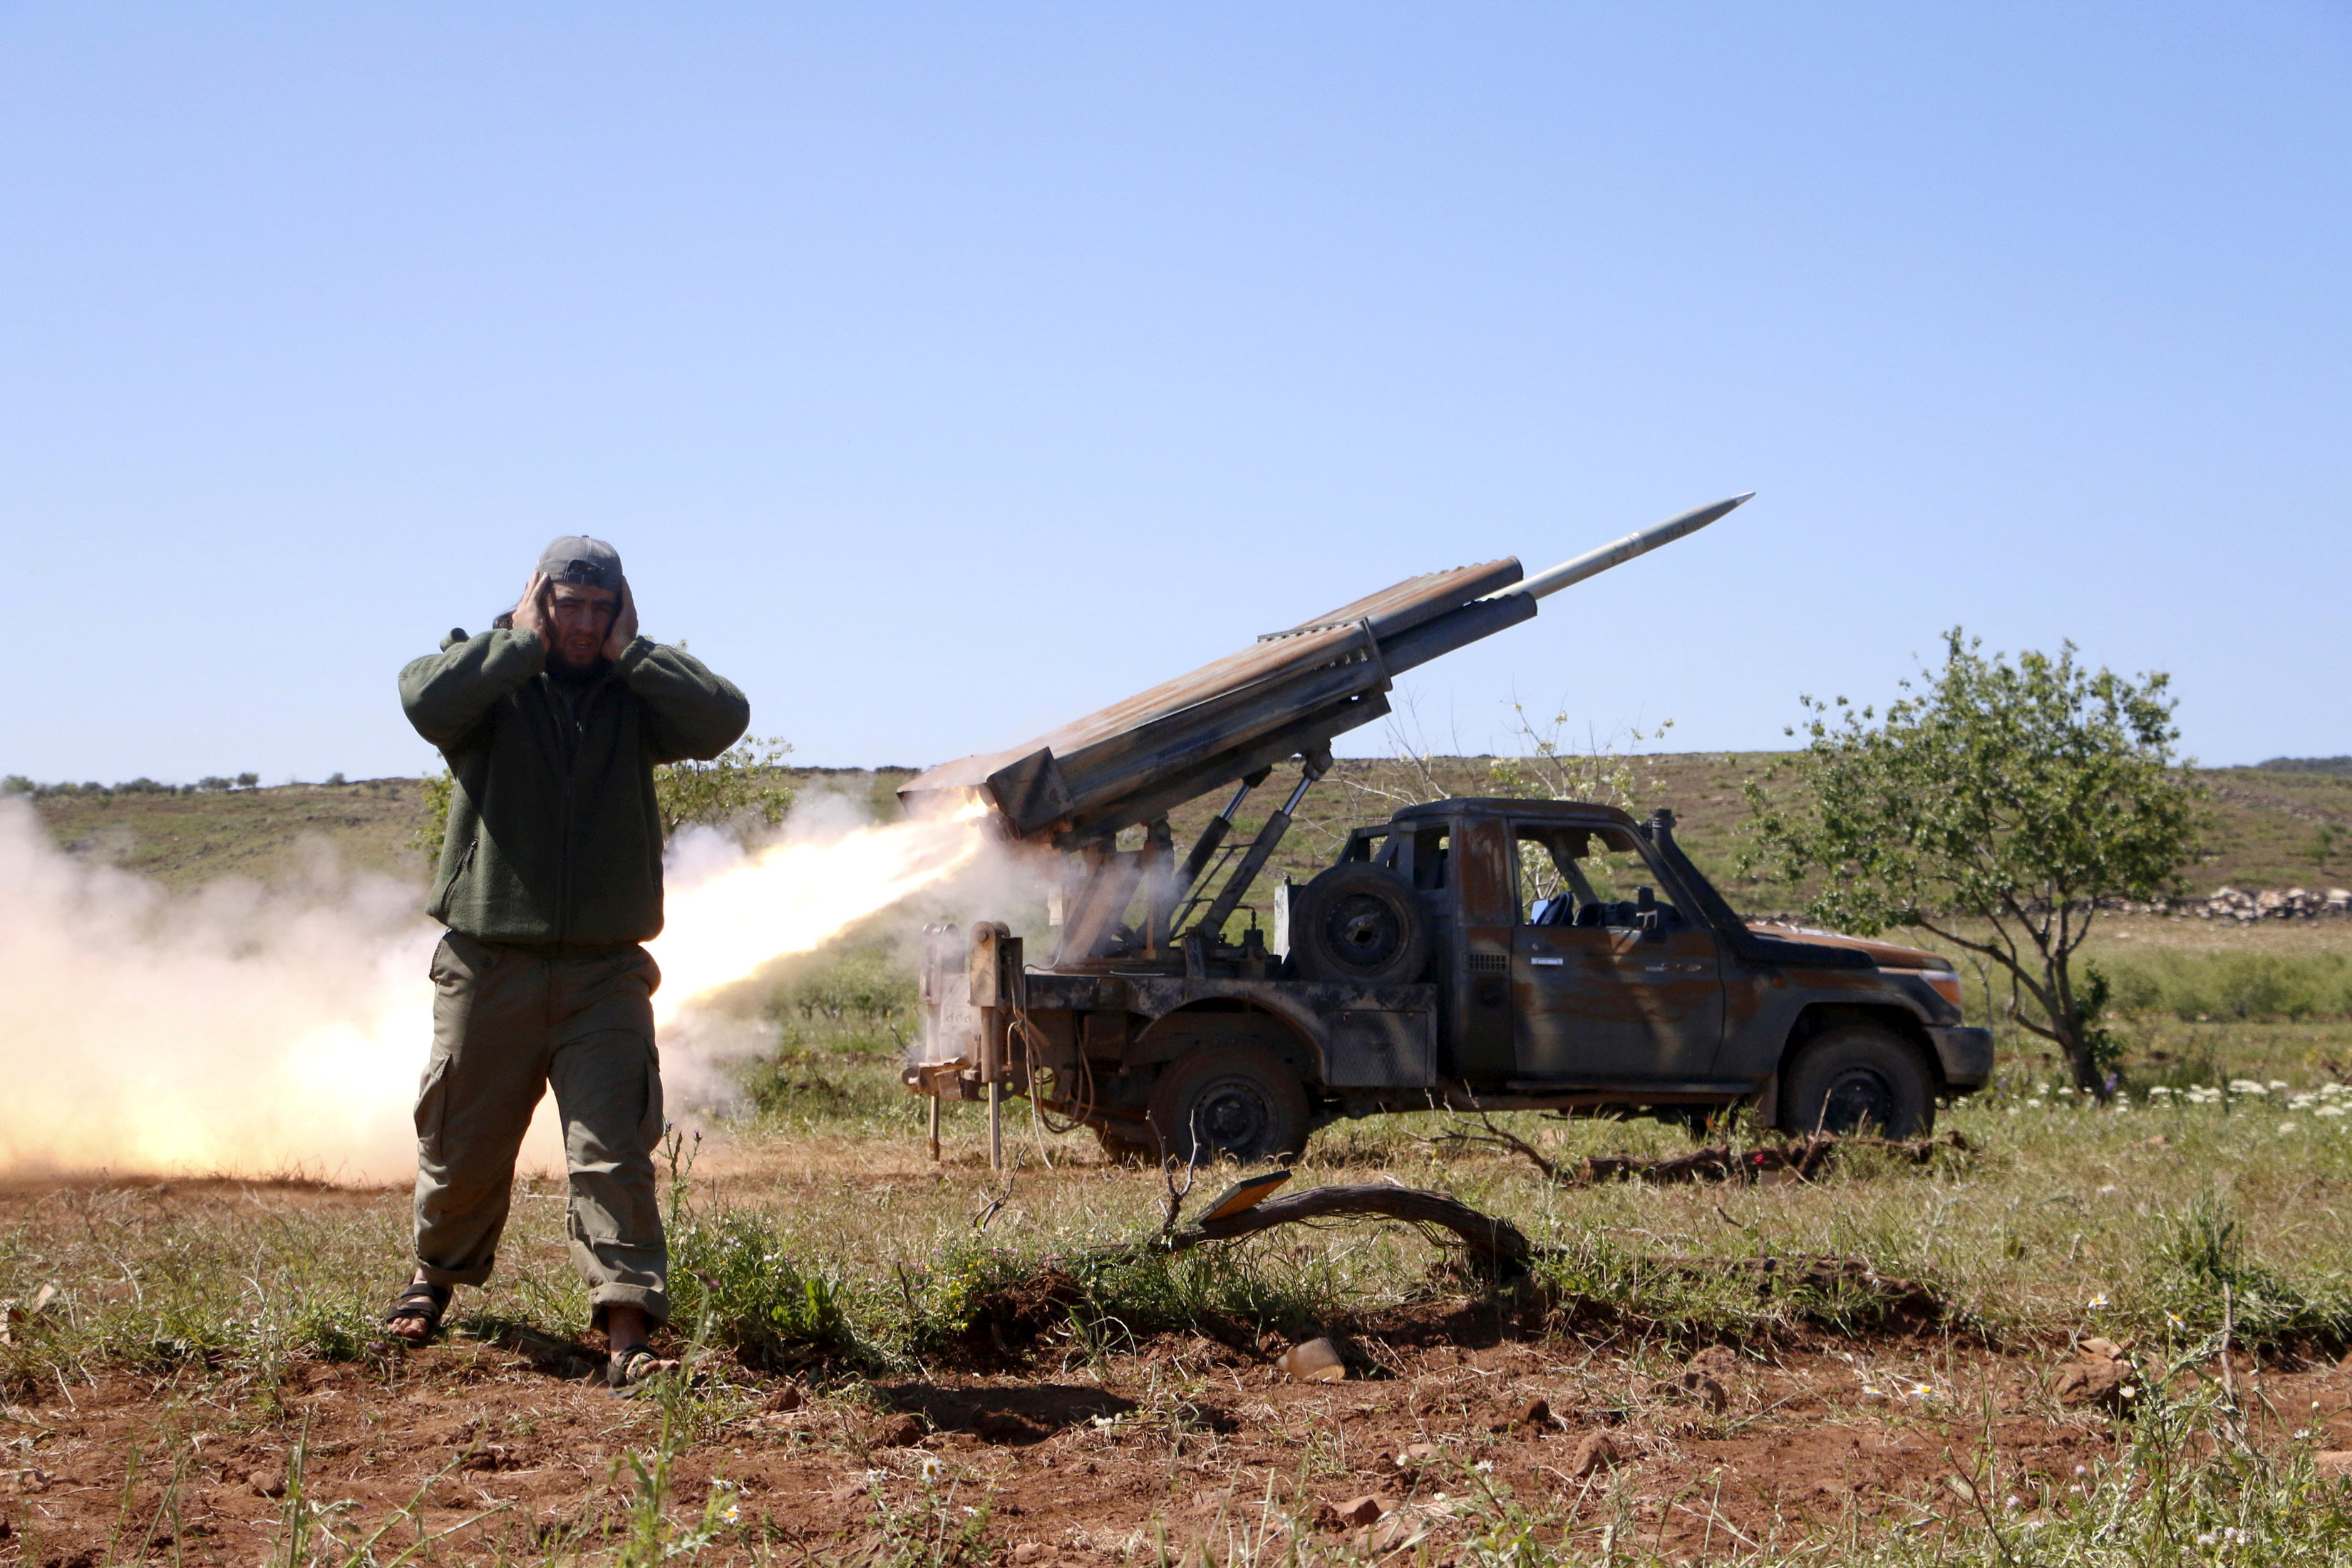 FILE PHOTO: A rebel fighter from the Ahrar al-Sham Islamic Movement reacts as they fire grad rockets from Idlib countryside, towards forces loyal to Syria's President Bashar al-Assad stationed at Jureen town in al-Ghab plain in the Hama countryside, Syria, April 25, 2015. REUTERS/Mohamad Bayoush/File Photo